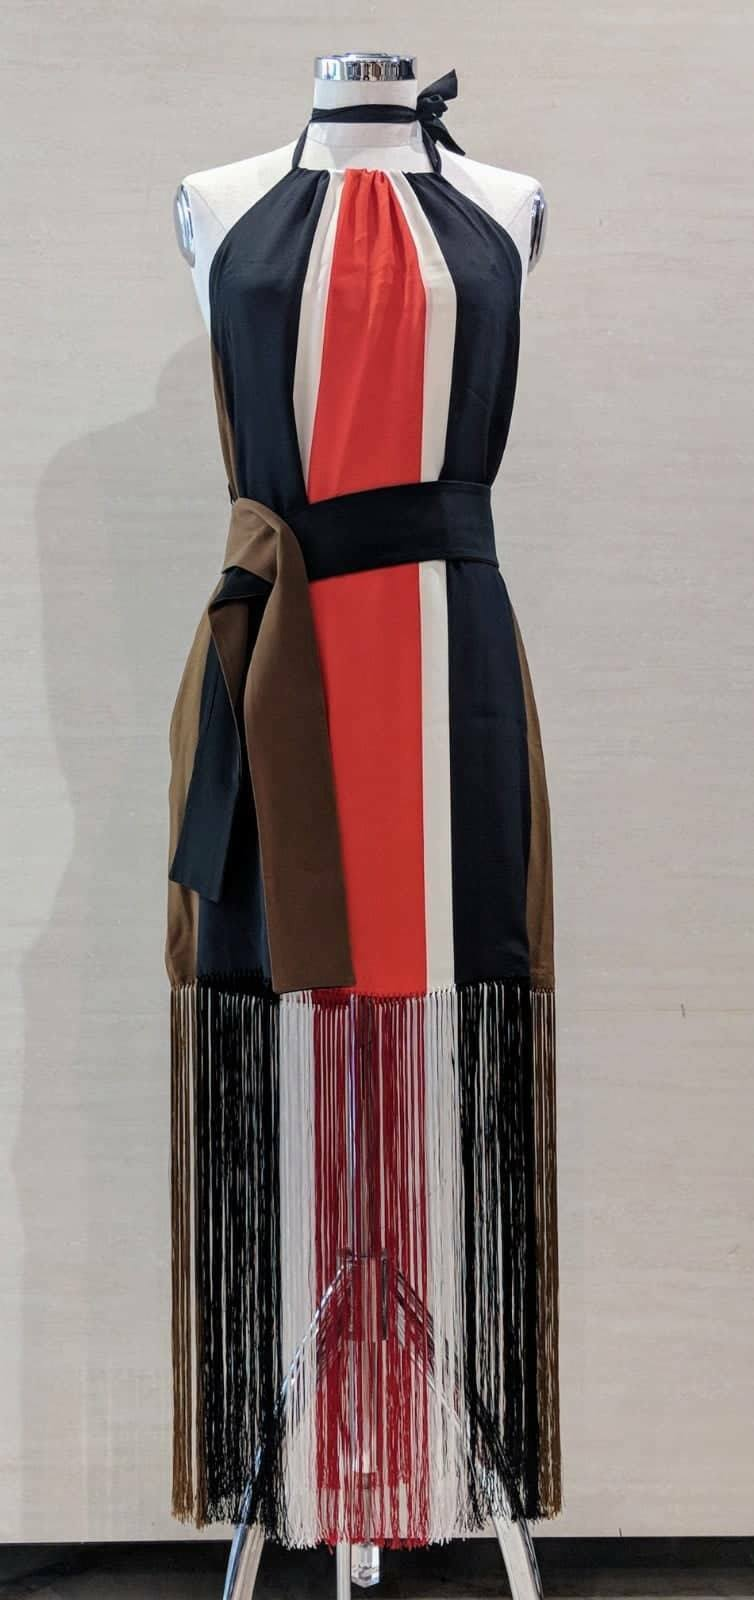 1200 NWT FENDI Multicolor Stripped 100% Silk FRINGE Dress Size S MADE IN ITALY 632278